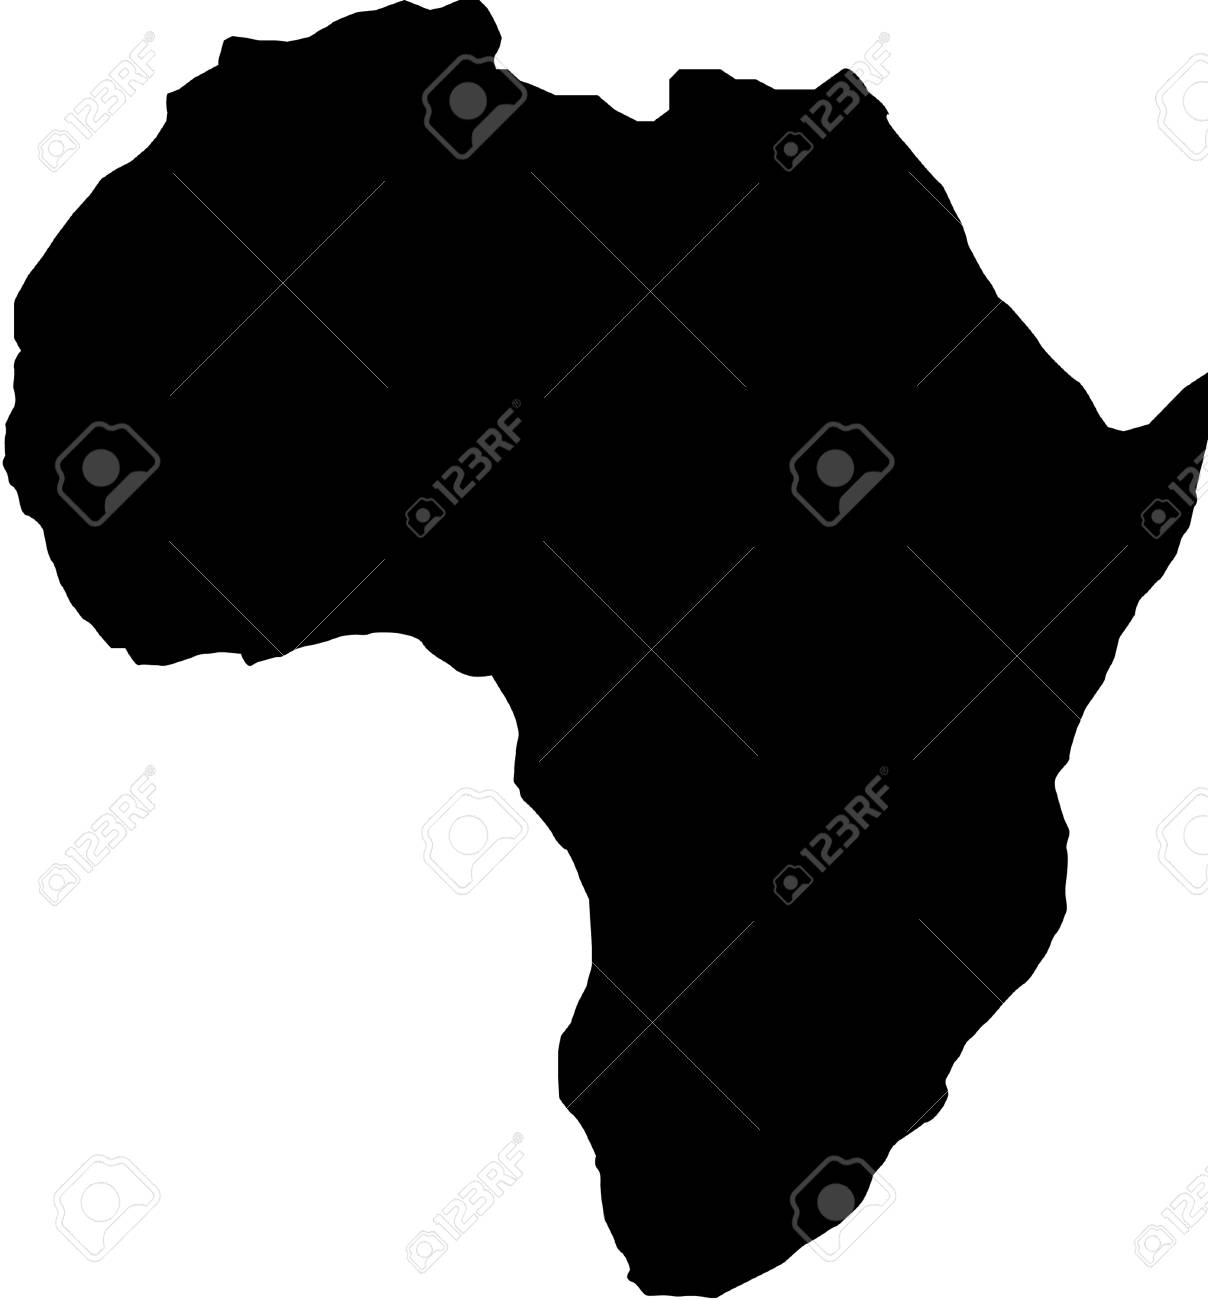 Africa Map Silhouette Vector Illustration. Royalty Free Cliparts